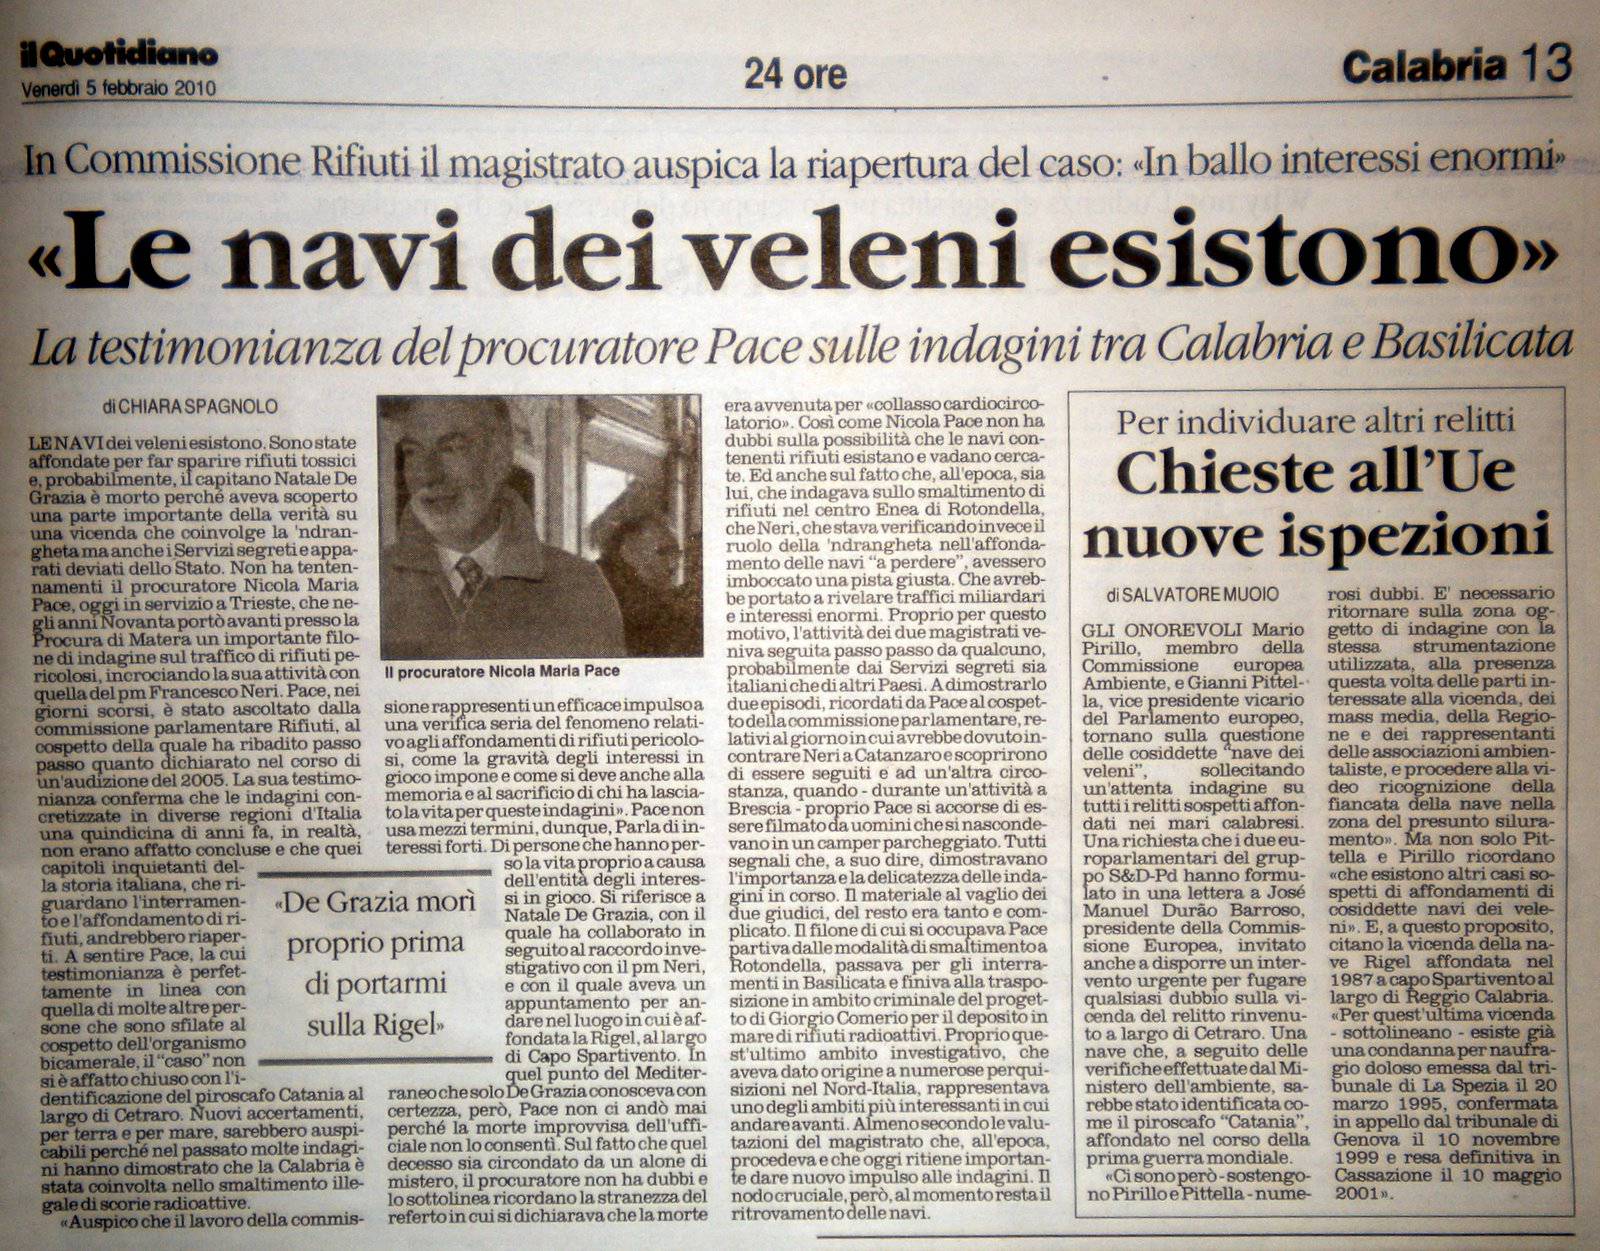 Thumbnail image for /public/upload/2010/2/634010816498911373_Le navi dei veleni esistono- quotidiano 05-02-2010.JPG